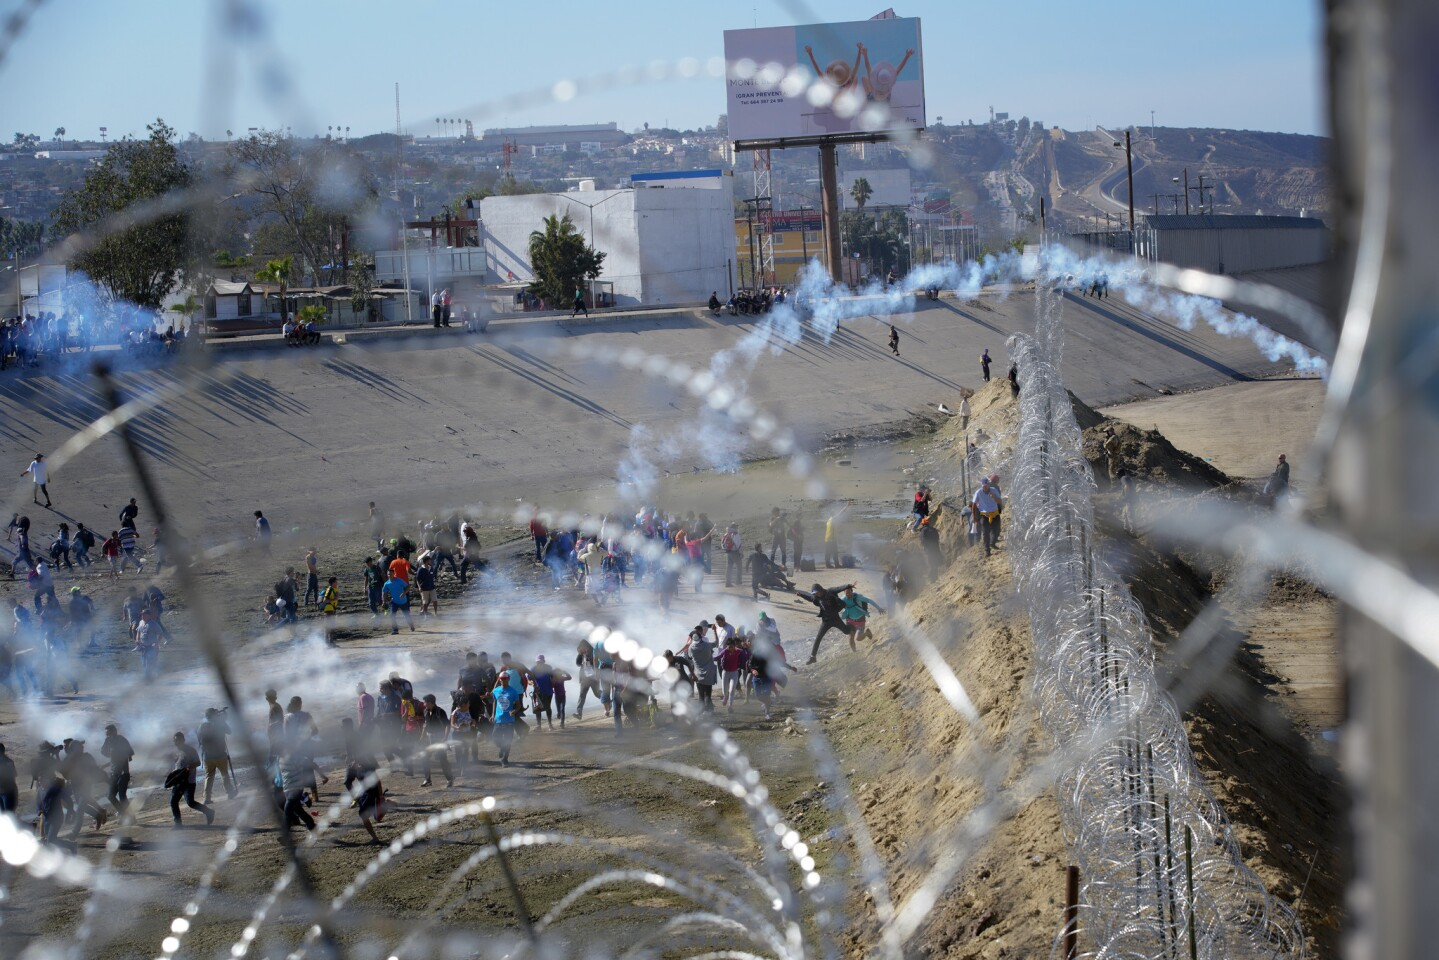 U.S. Border Patrol deploy CS gas on migrants refusing to step away from the Concertina wire set up along the U.S. Mexico border near San Ysidro.